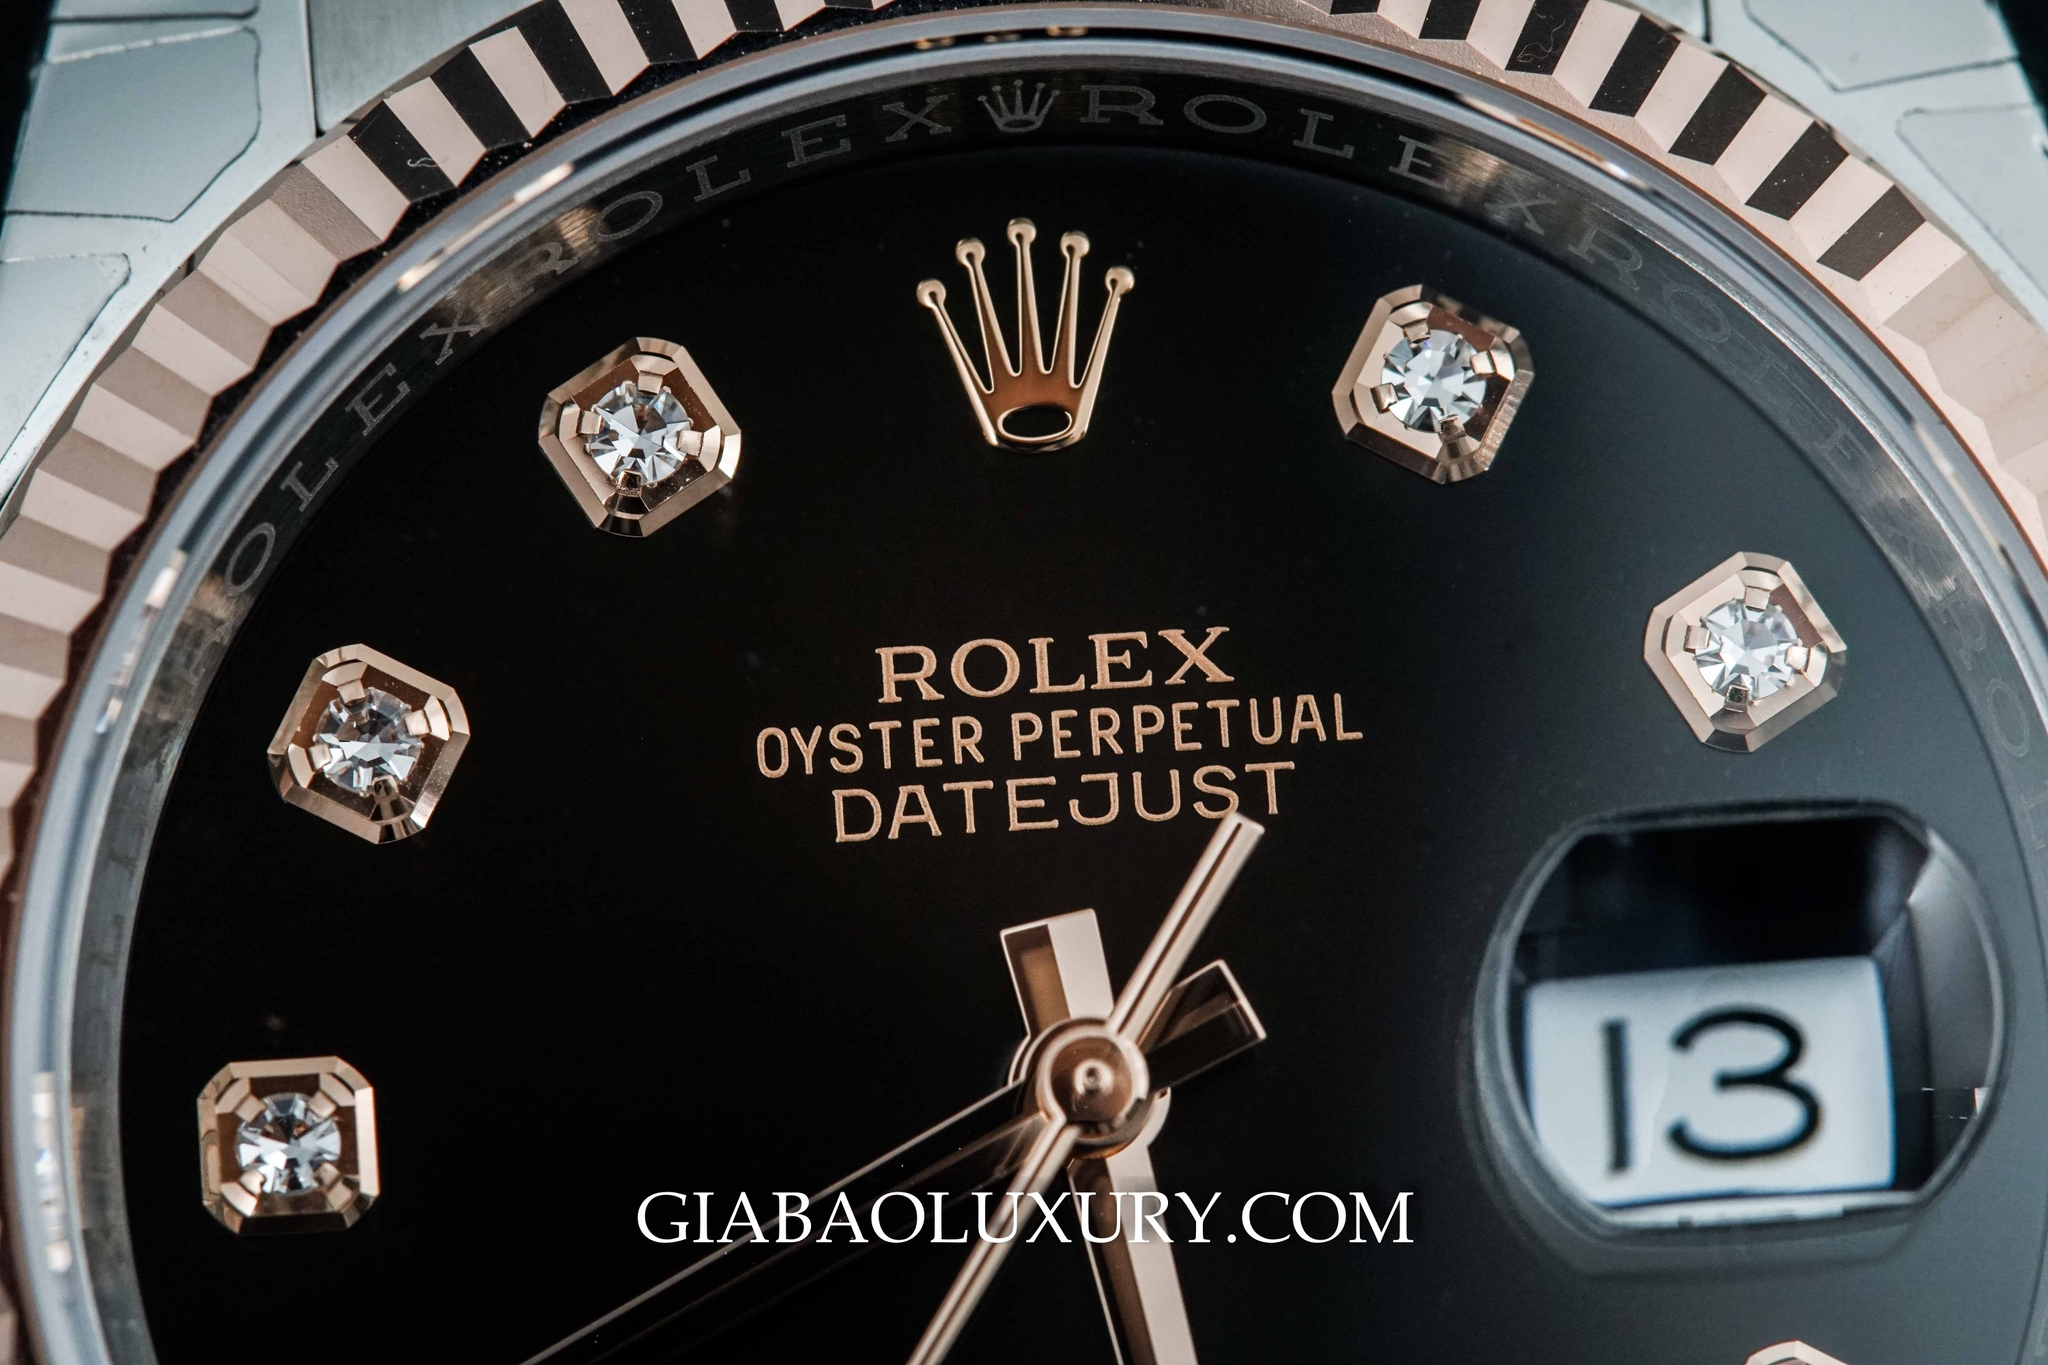 Đồng hồ Rolex Oyster Perpetual Datejust 36 116231 mặt đen